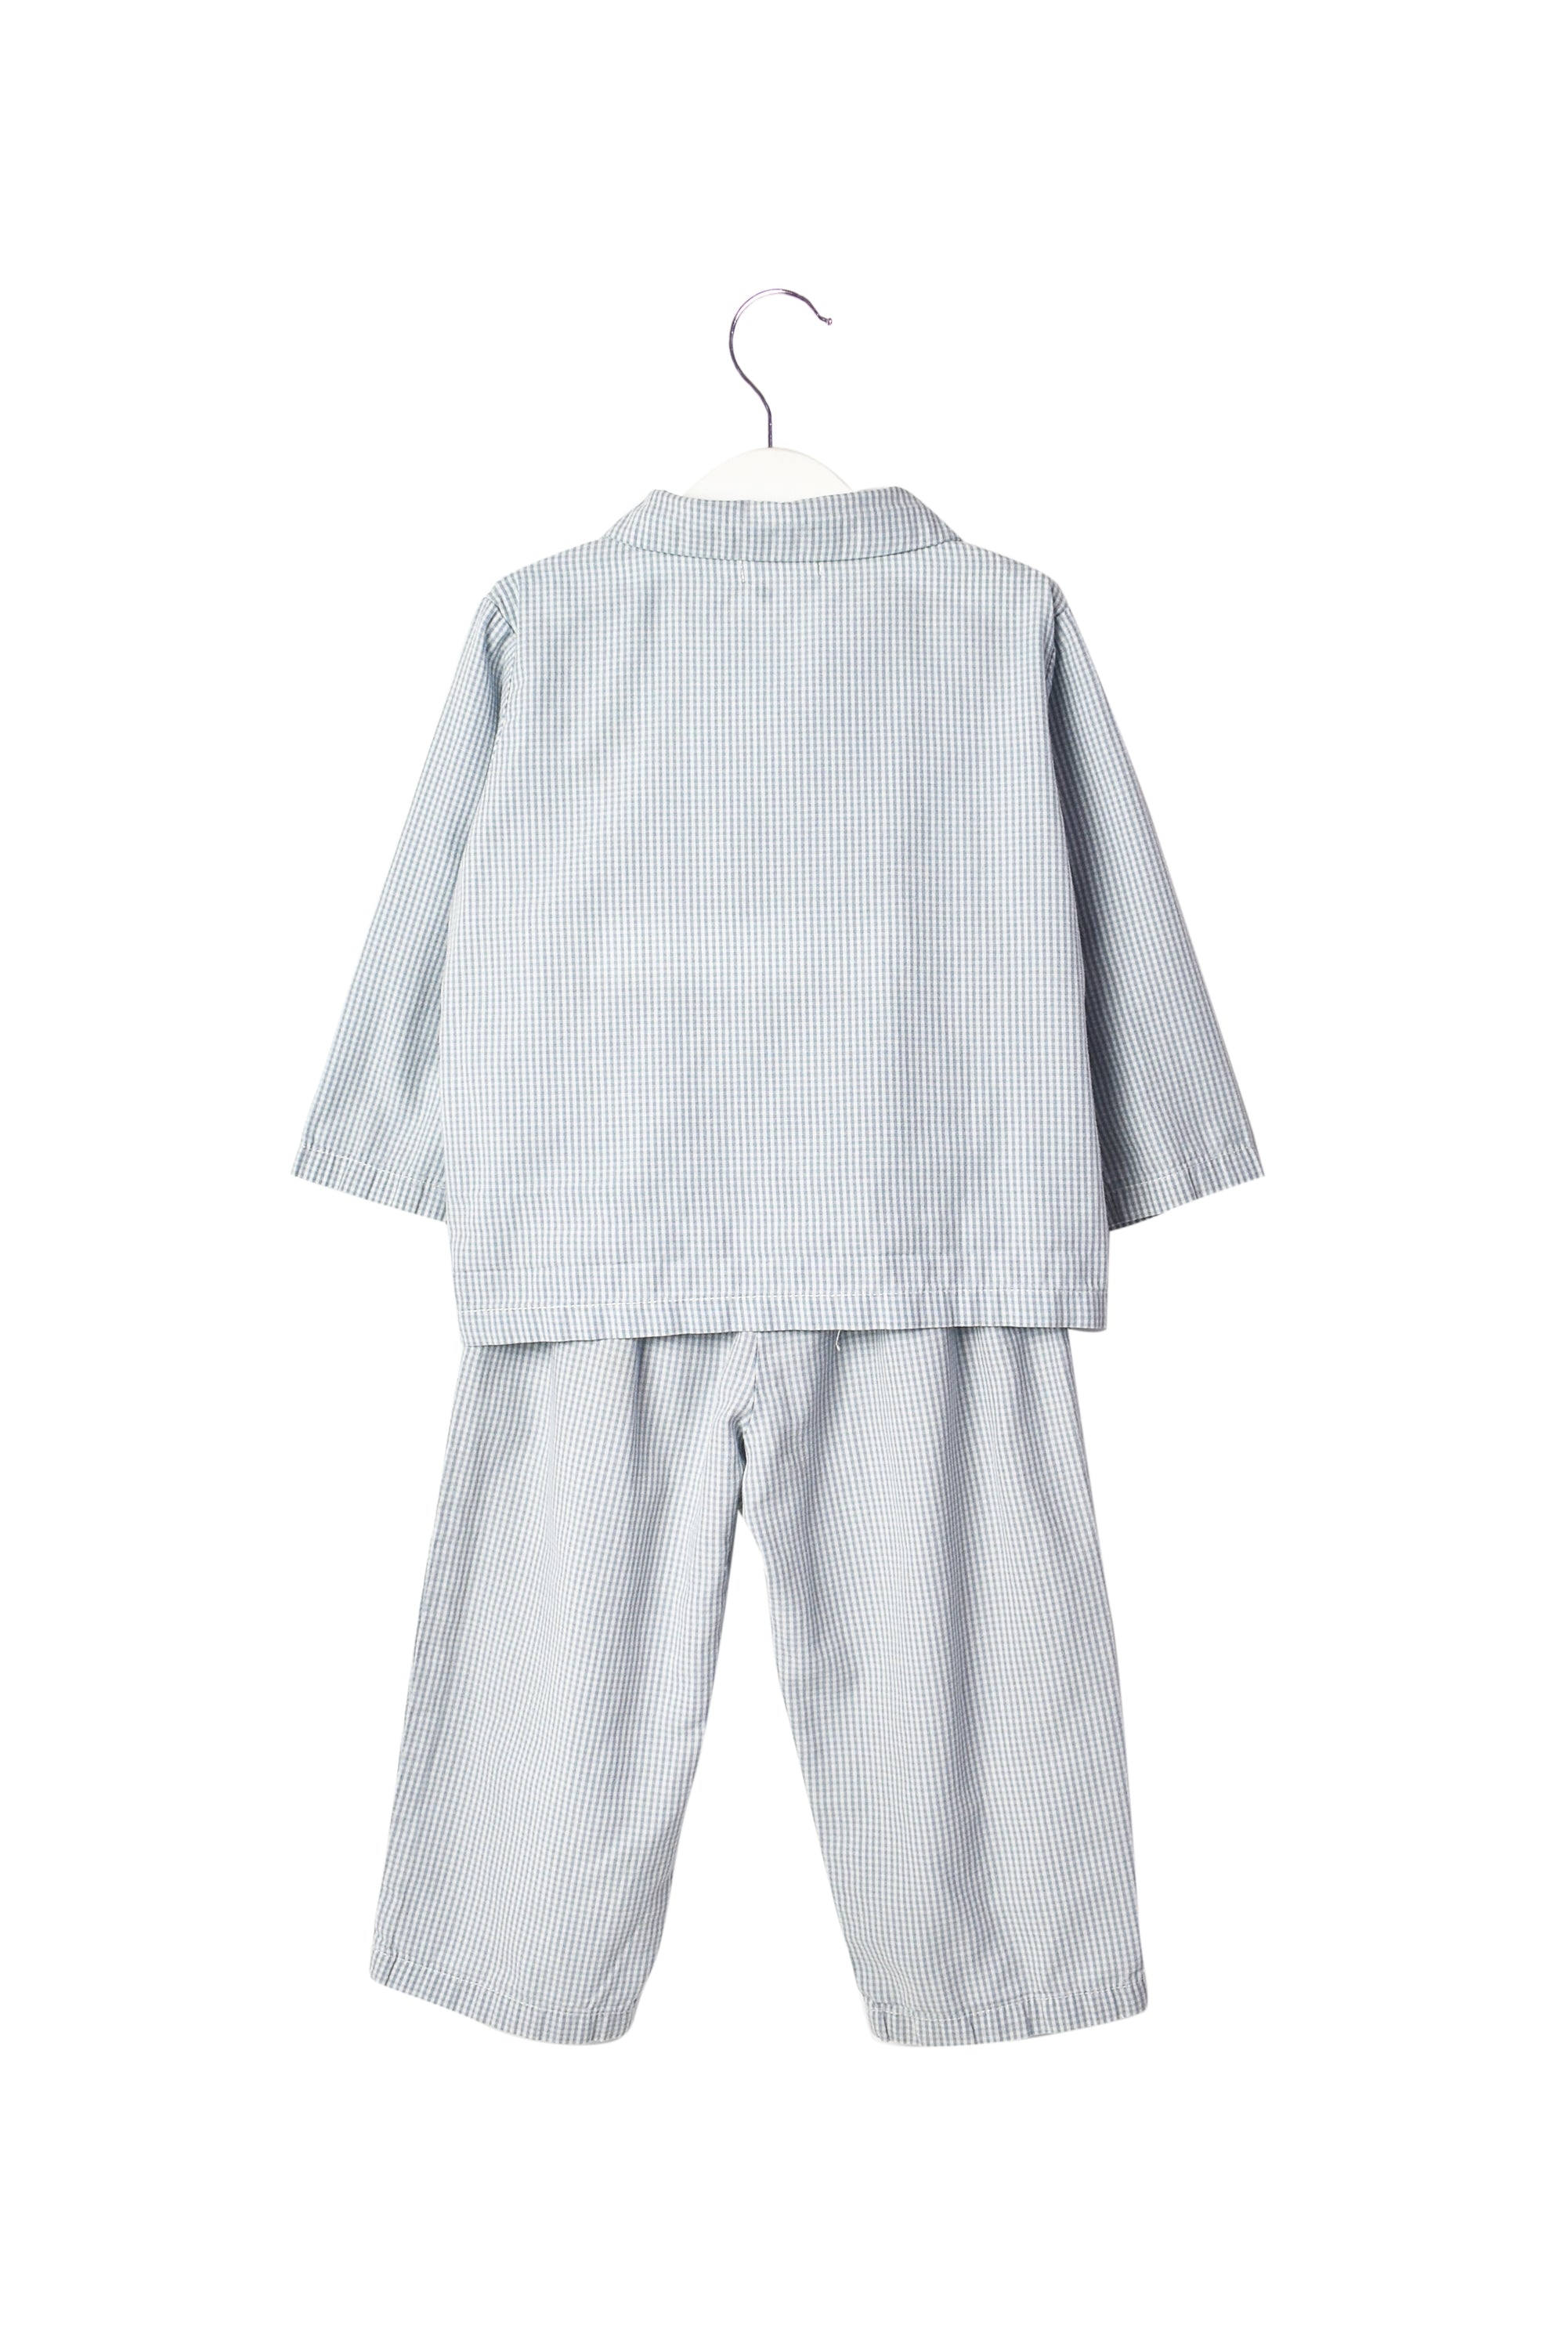 10007375 Bout'Chou Baby~ Shirt and Pants 18M at Retykle